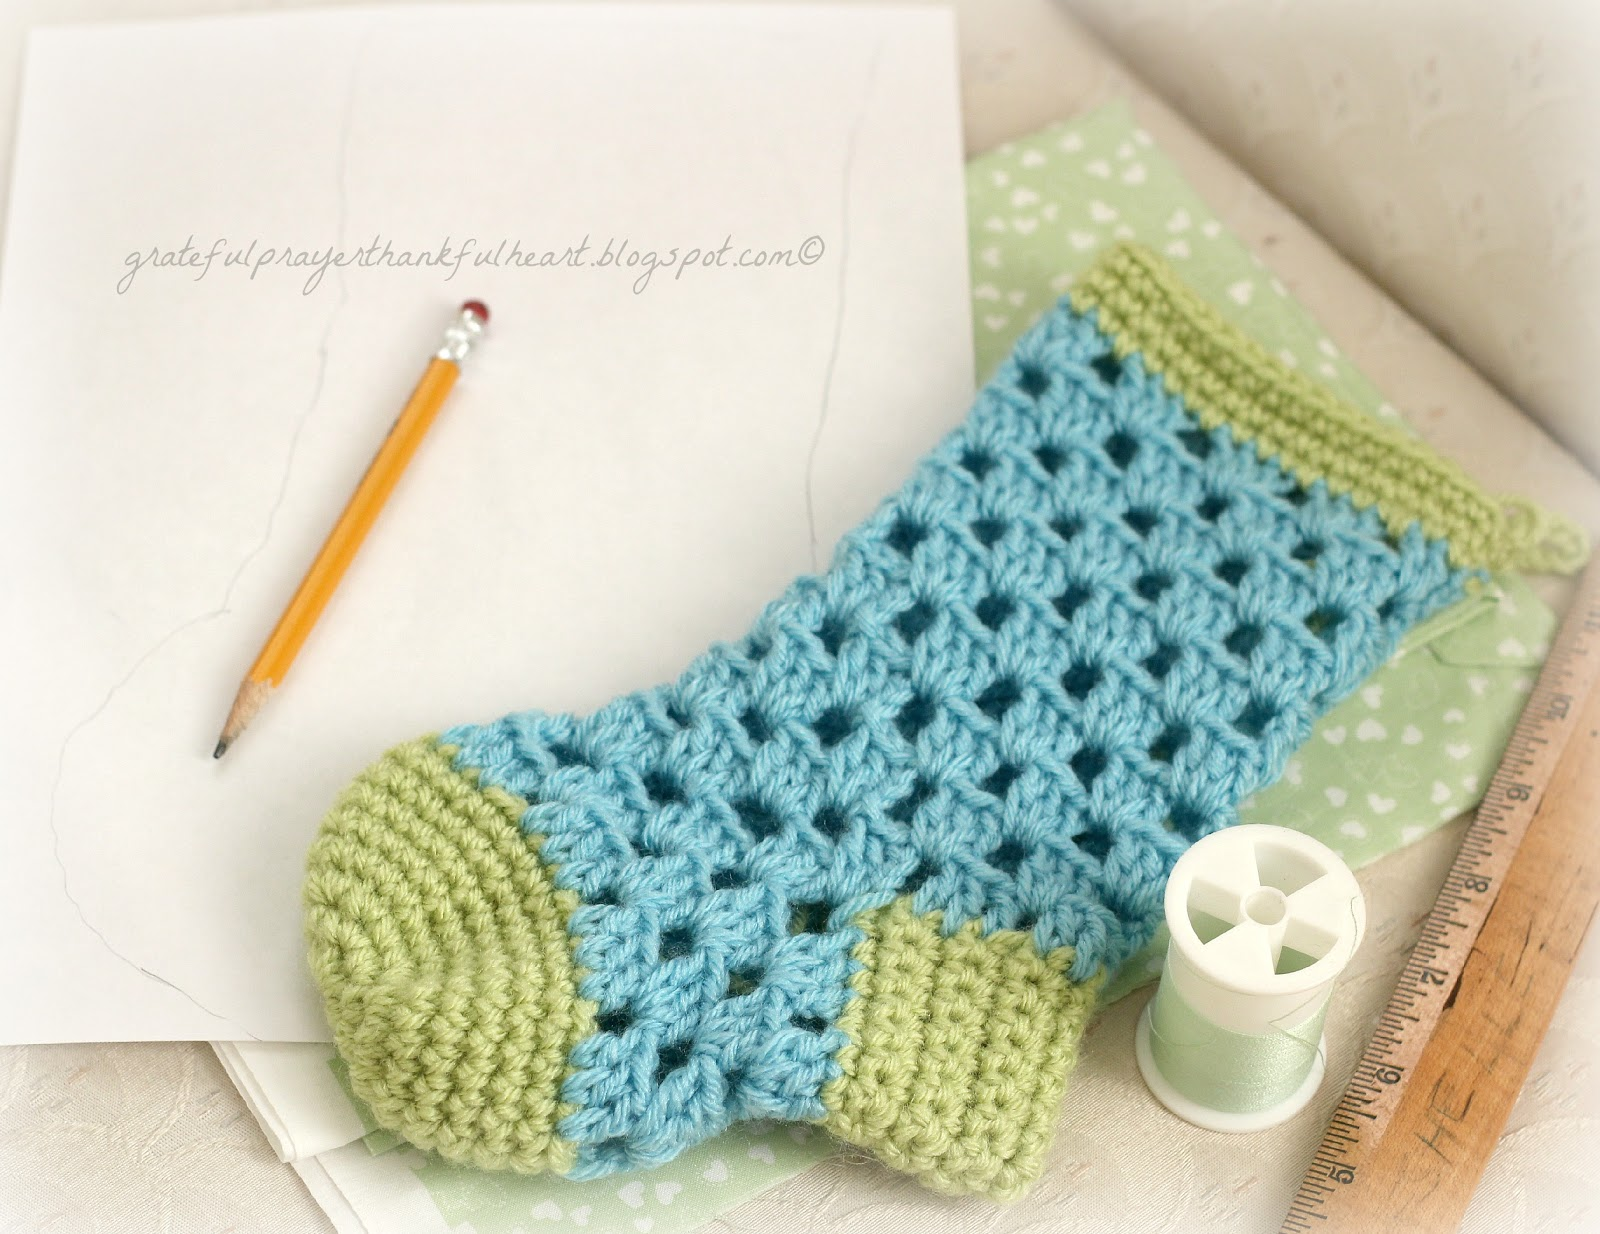 Lined crochet stocking for chloe grateful prayer thankful heart pattern for crochet stocking for babys 1st christmas it is lined with fabric to keep bankloansurffo Image collections